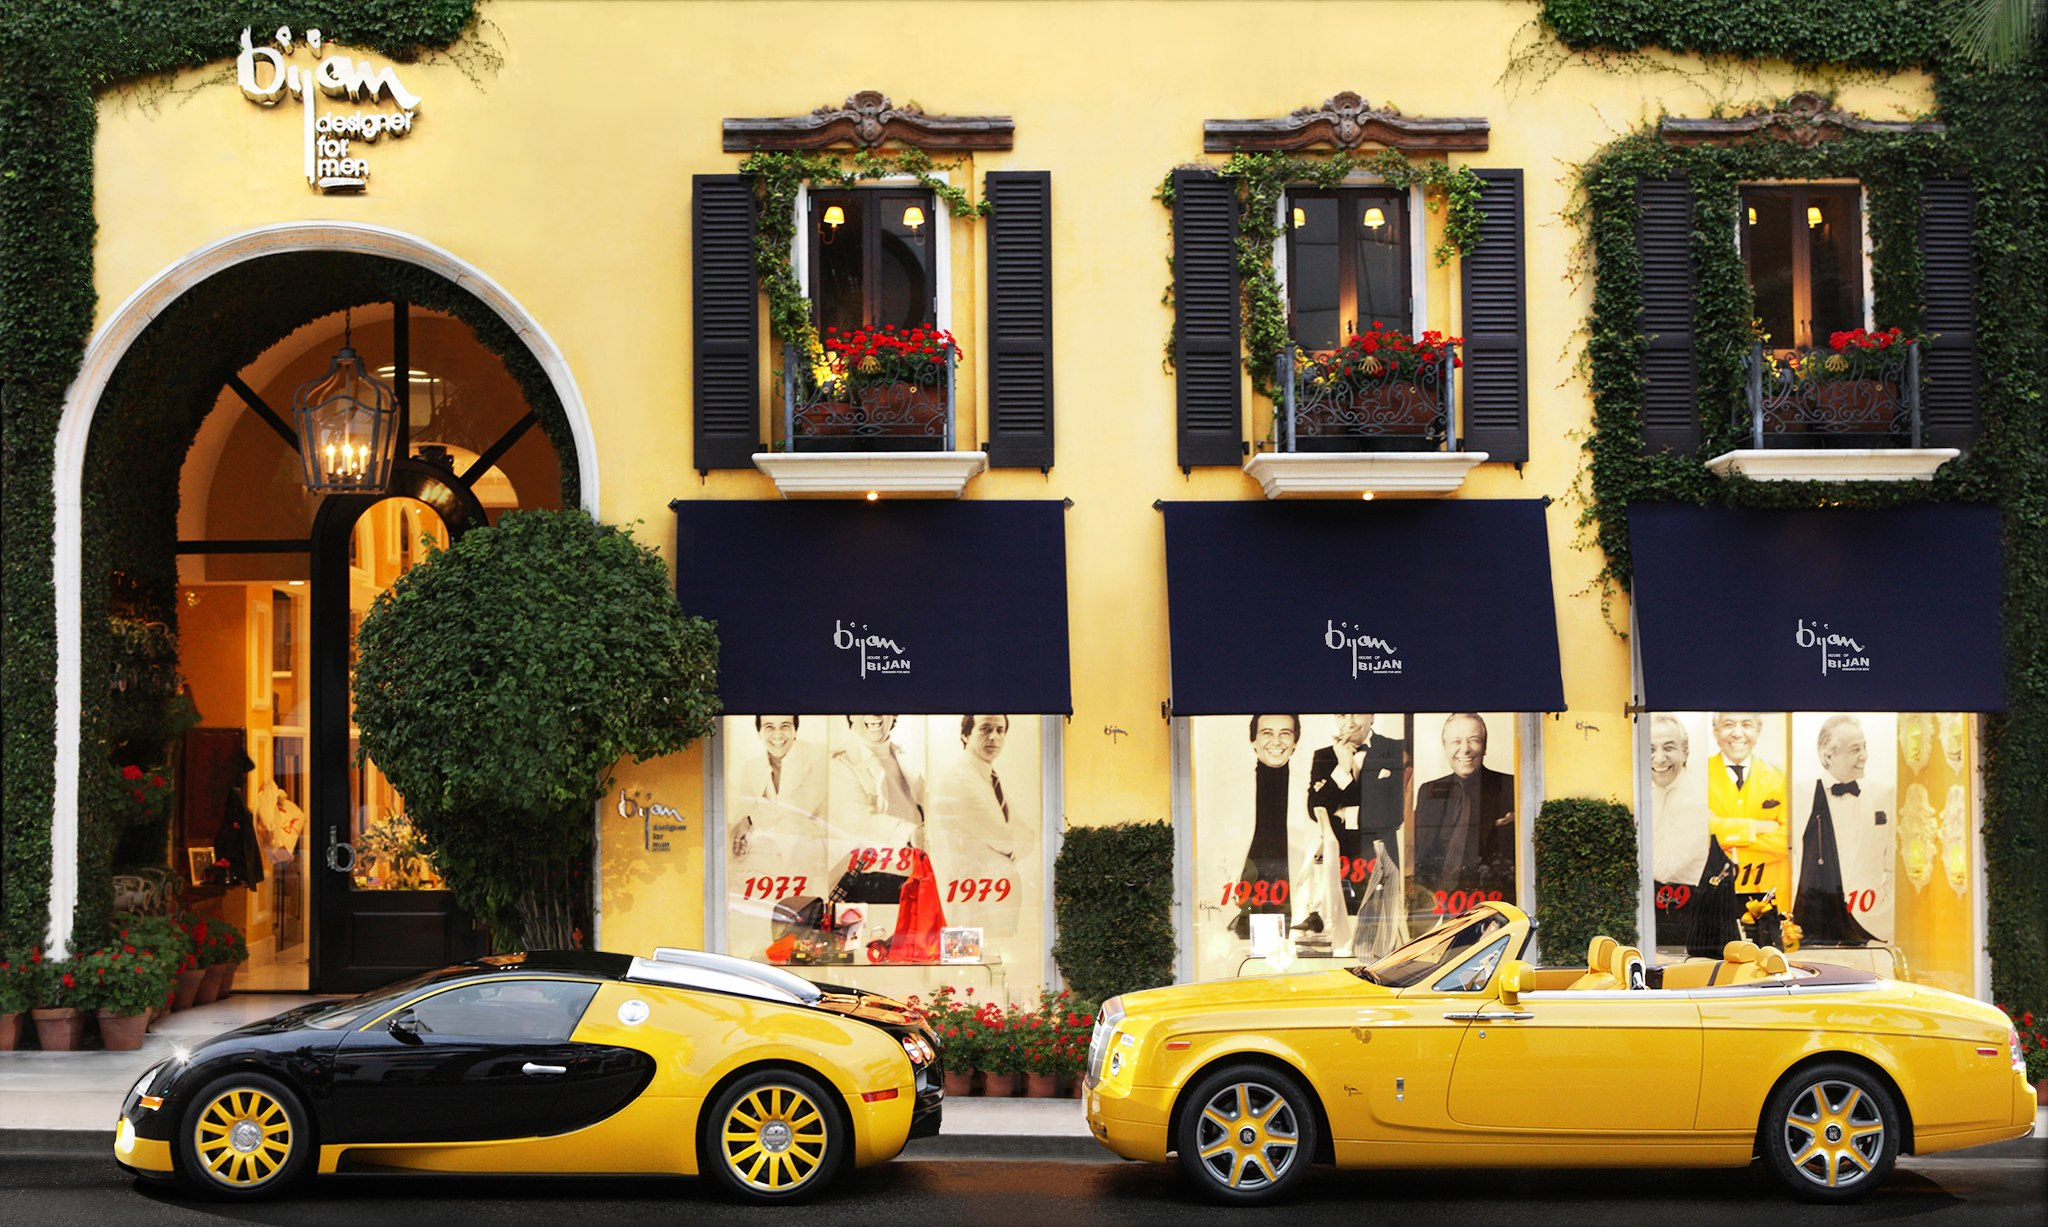 A beautiful Rolls-Royce and Bugatti Veyron outside the House of Bijan in Beverly Hills